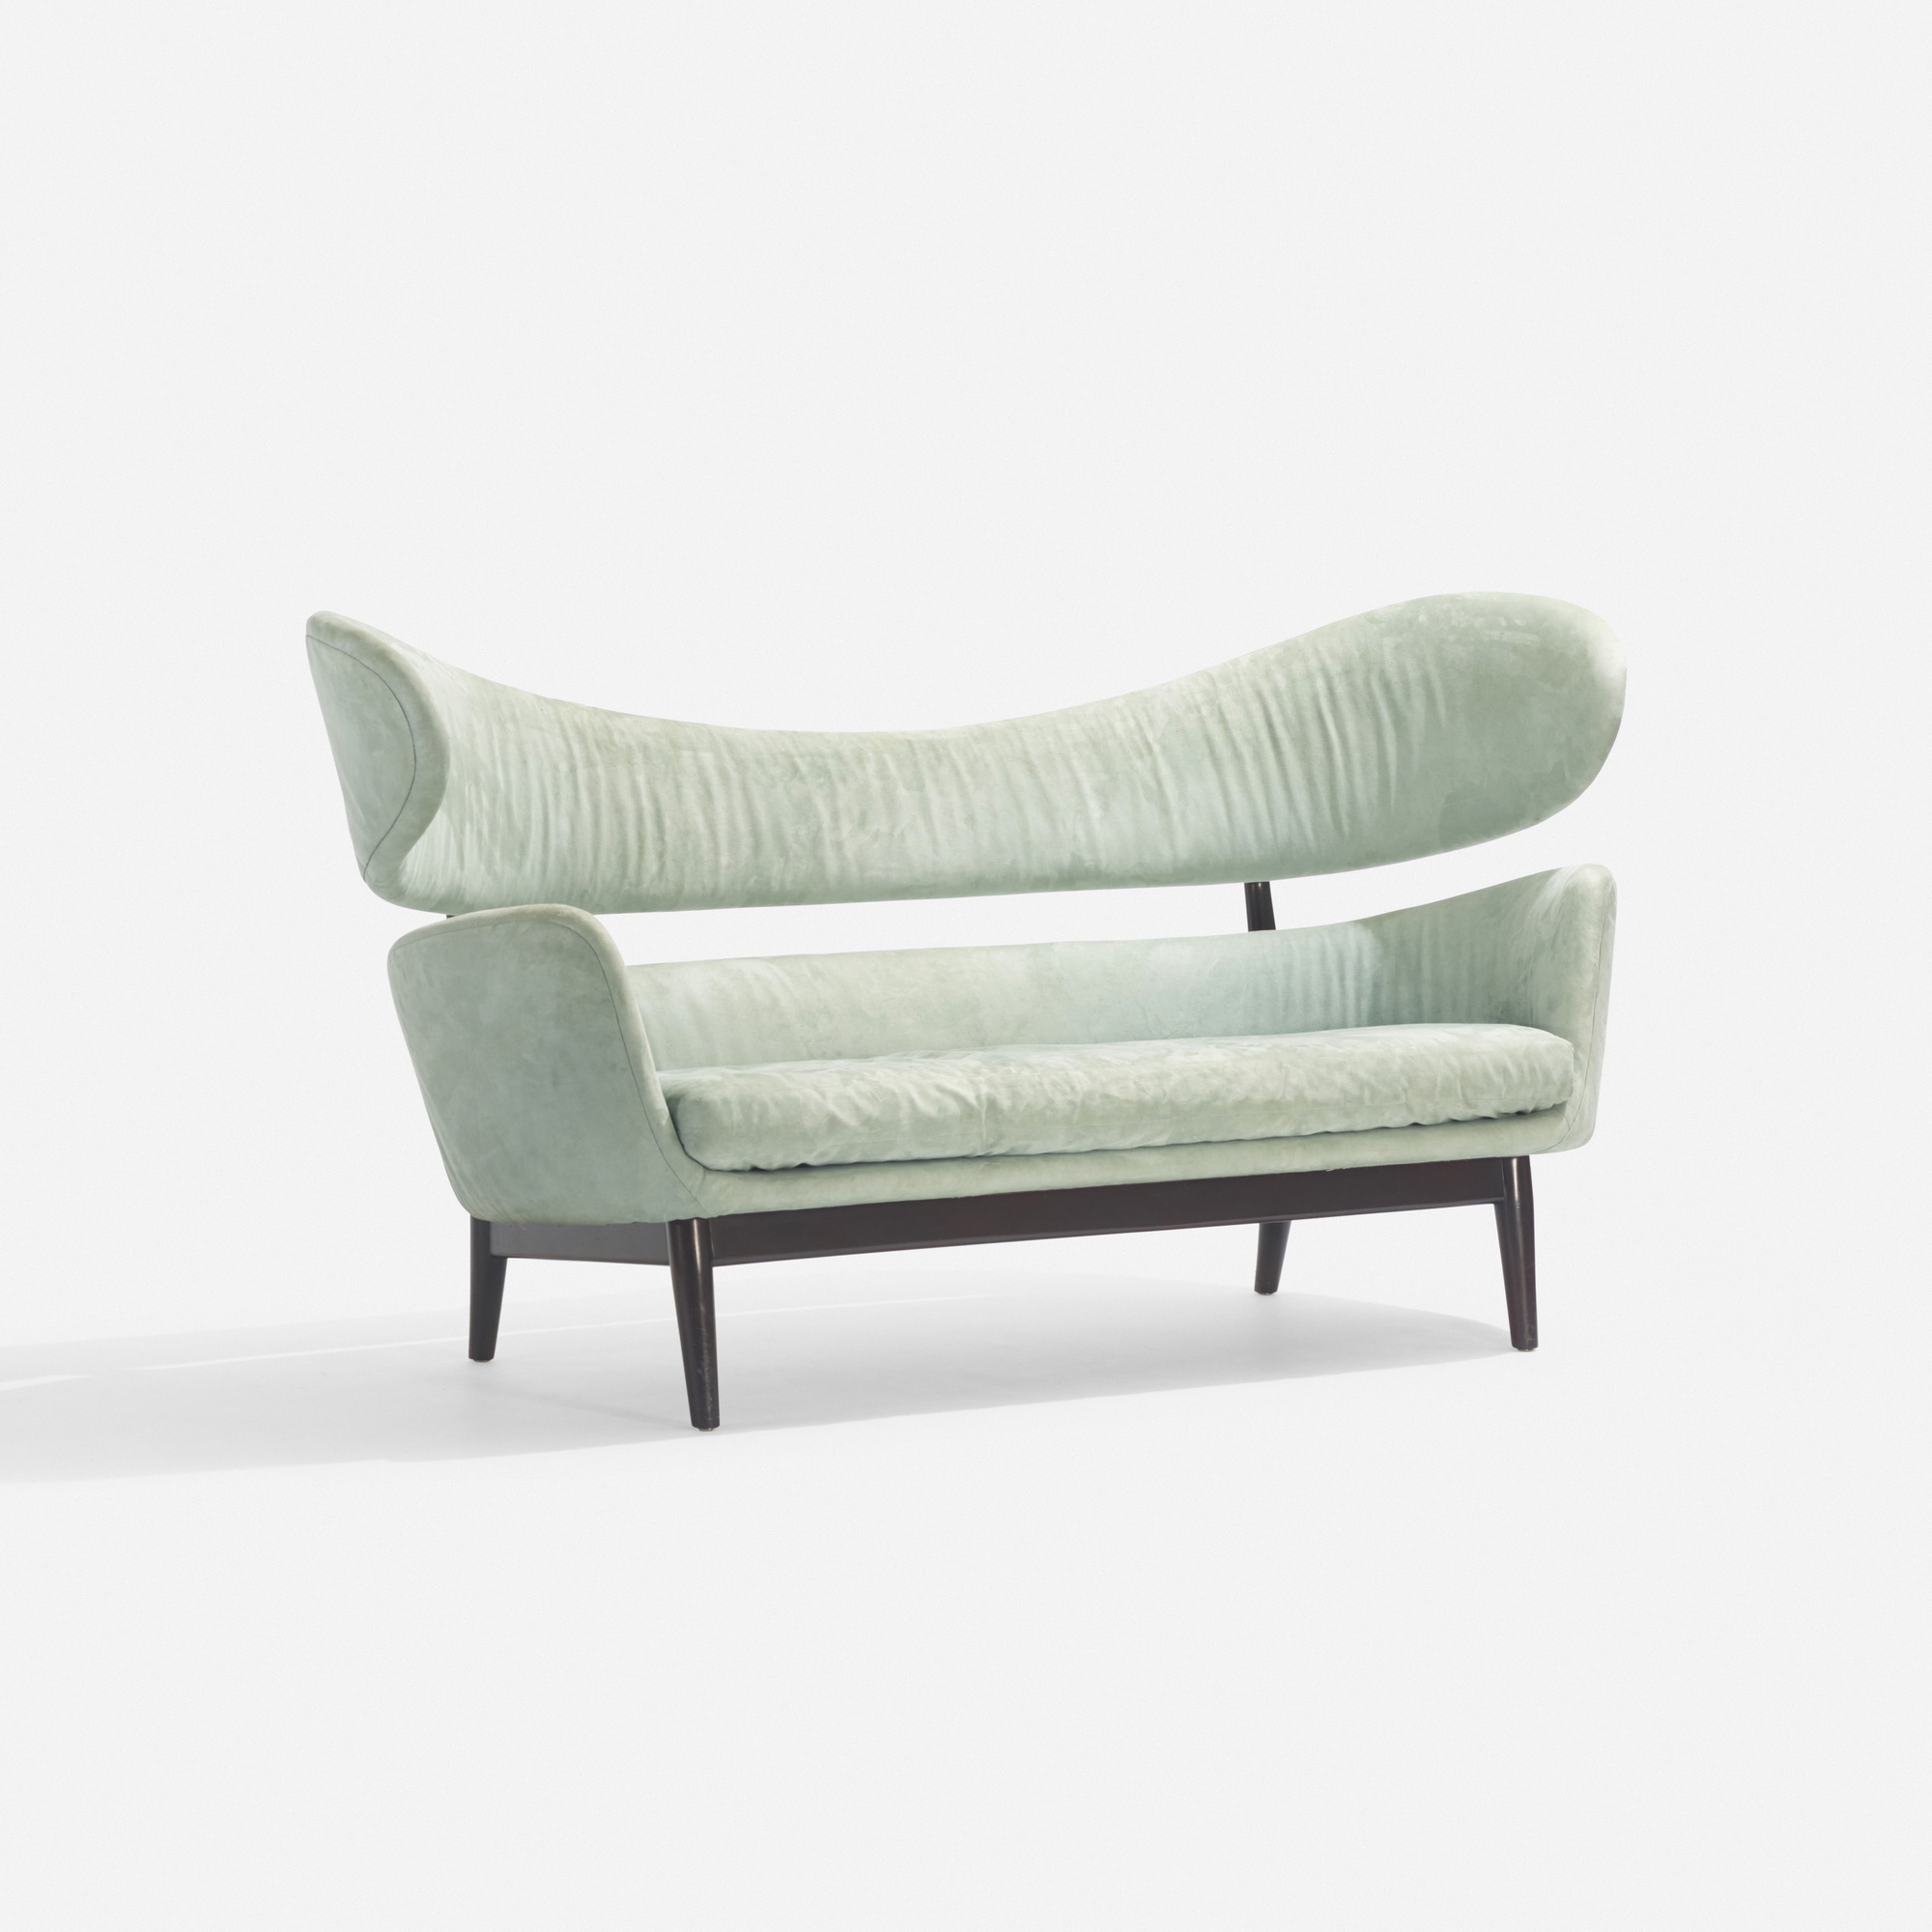 134: Finn Juhl / rare sofa (2 of 5)